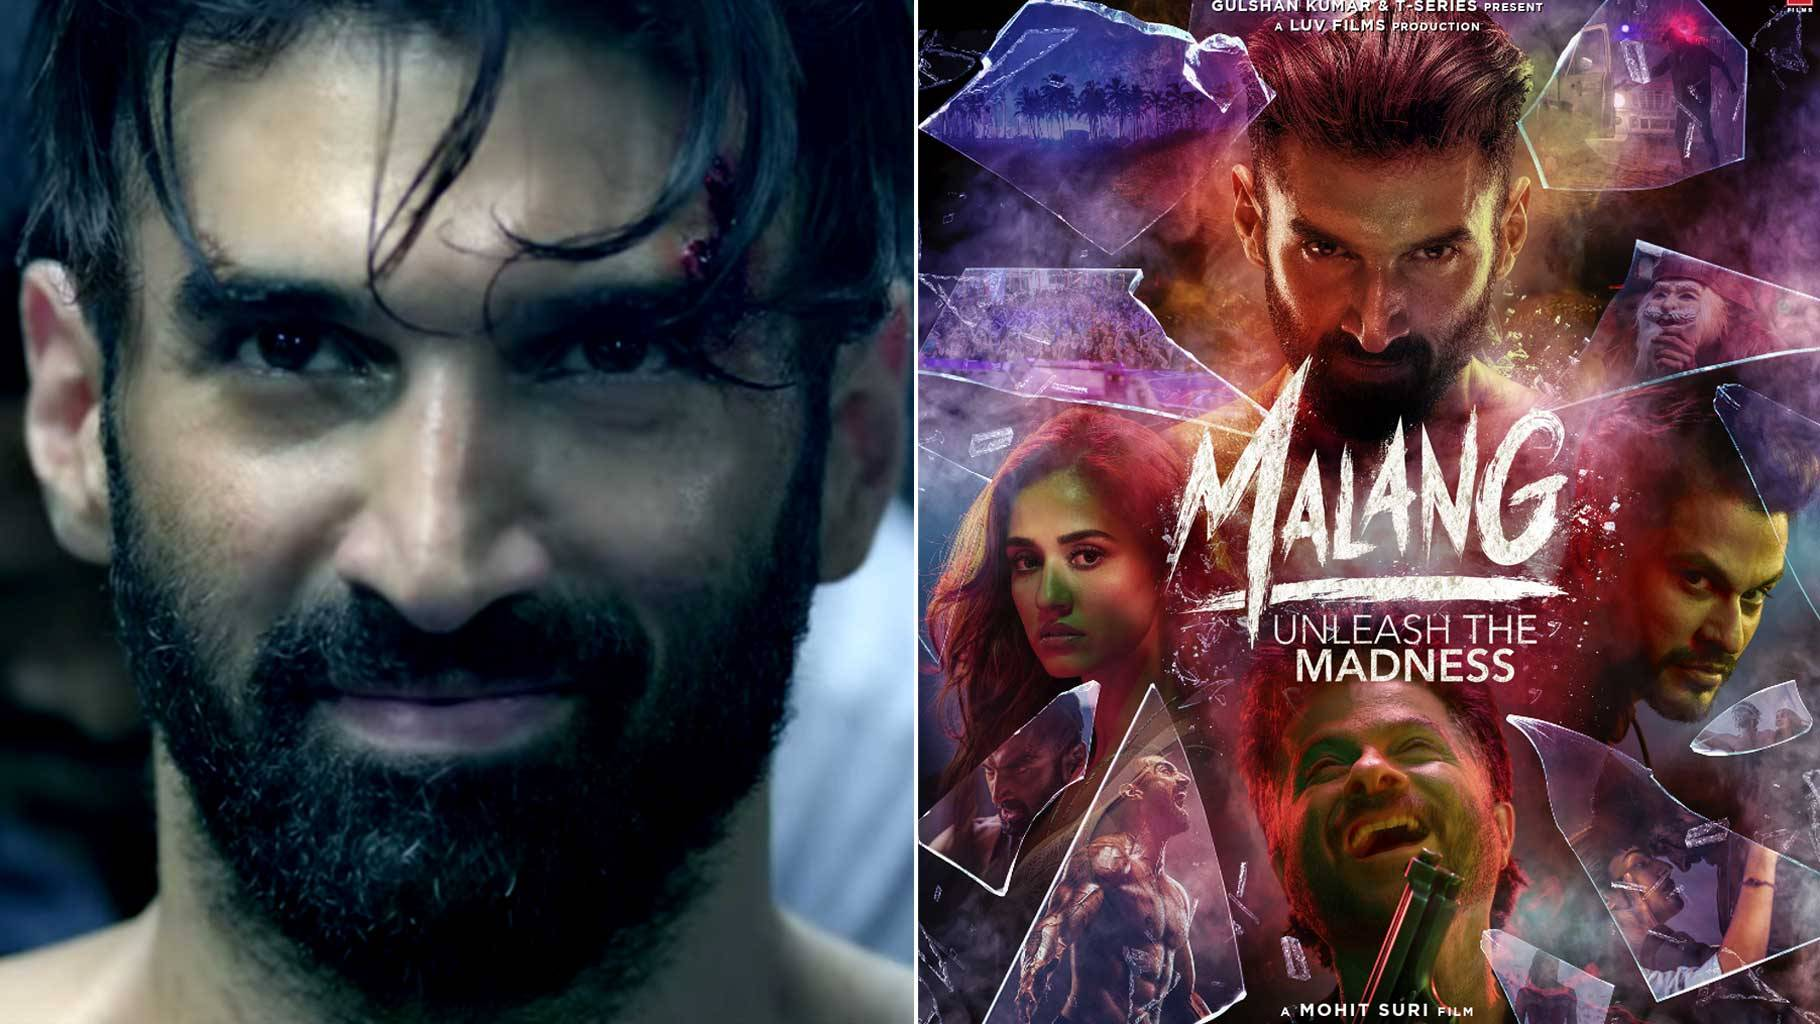 Malang Movie Trailer क 5 ब त ज स नजरअ द ज नह कर सकत Malang Trailer Review Aditya Roy Kapoor Starrer Malang Will Be A Turning Point Of His Career